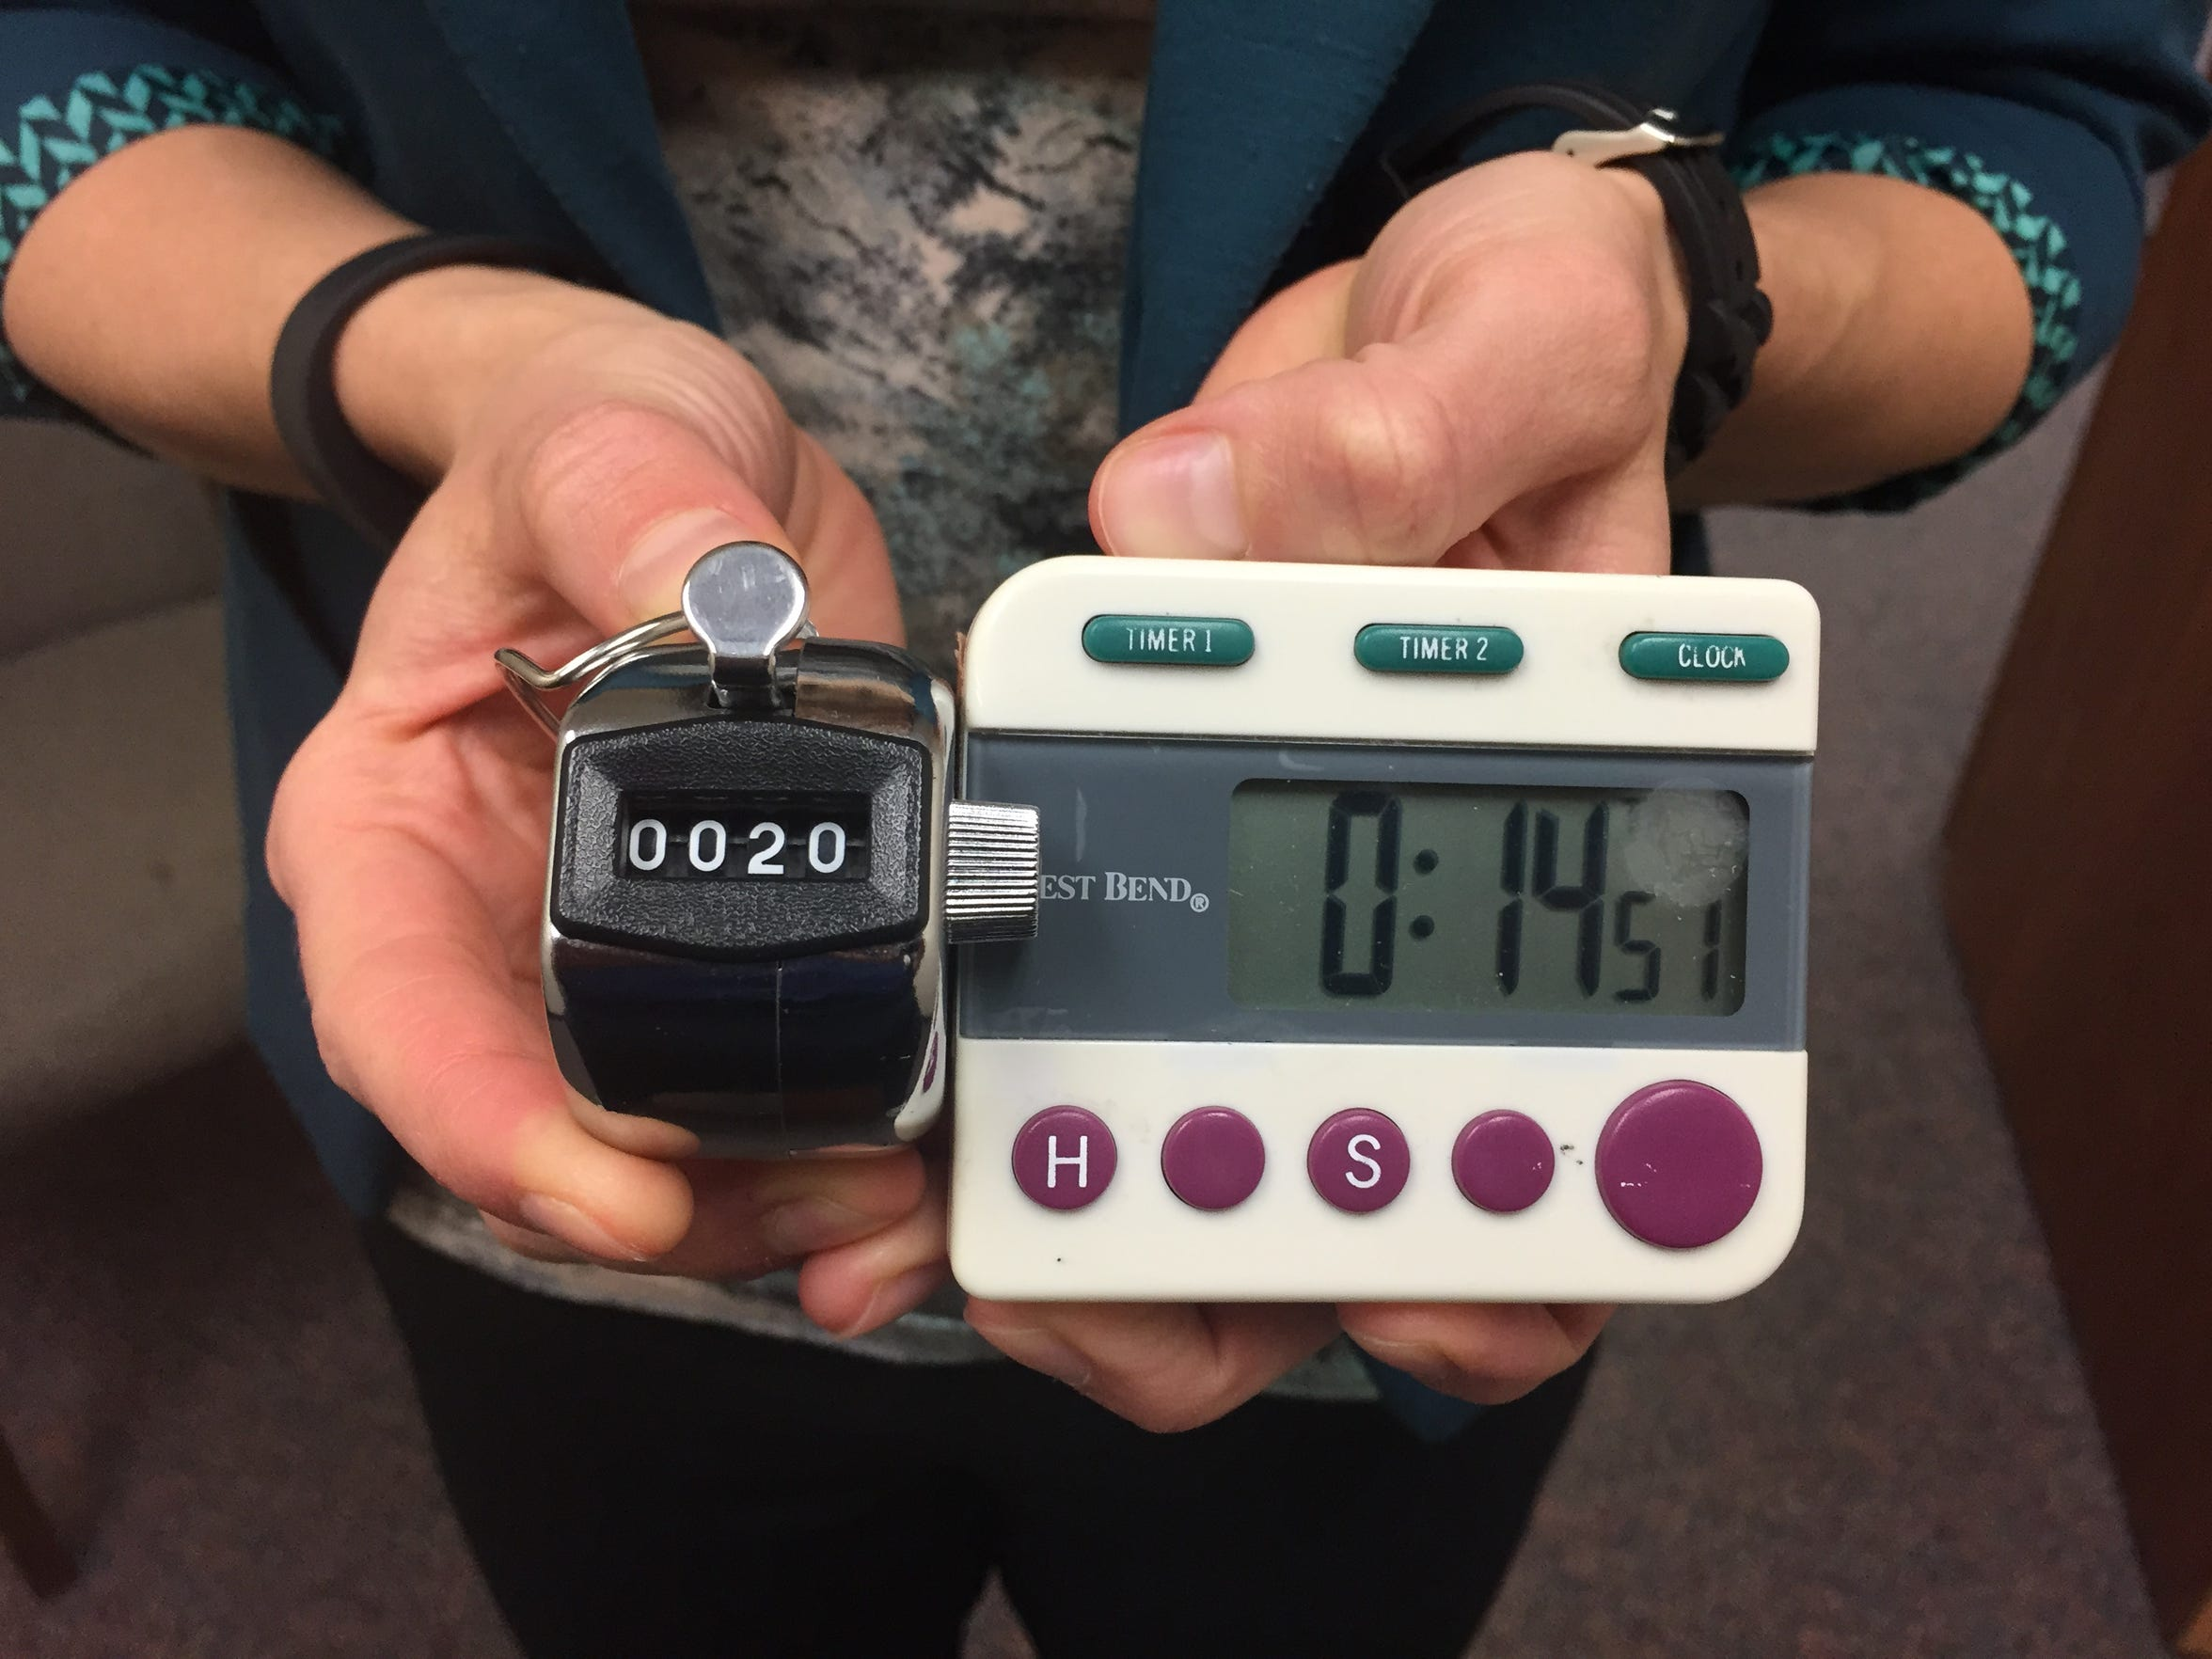 Physical therapist Stefanie Kirk holds the lap counter and timer for morbidly obese columnist Daniel Finney's latest walking test. He made 20 laps of 156 feet in less than 15 minutes, doubling his previous high of 10 laps just two weeks prior.